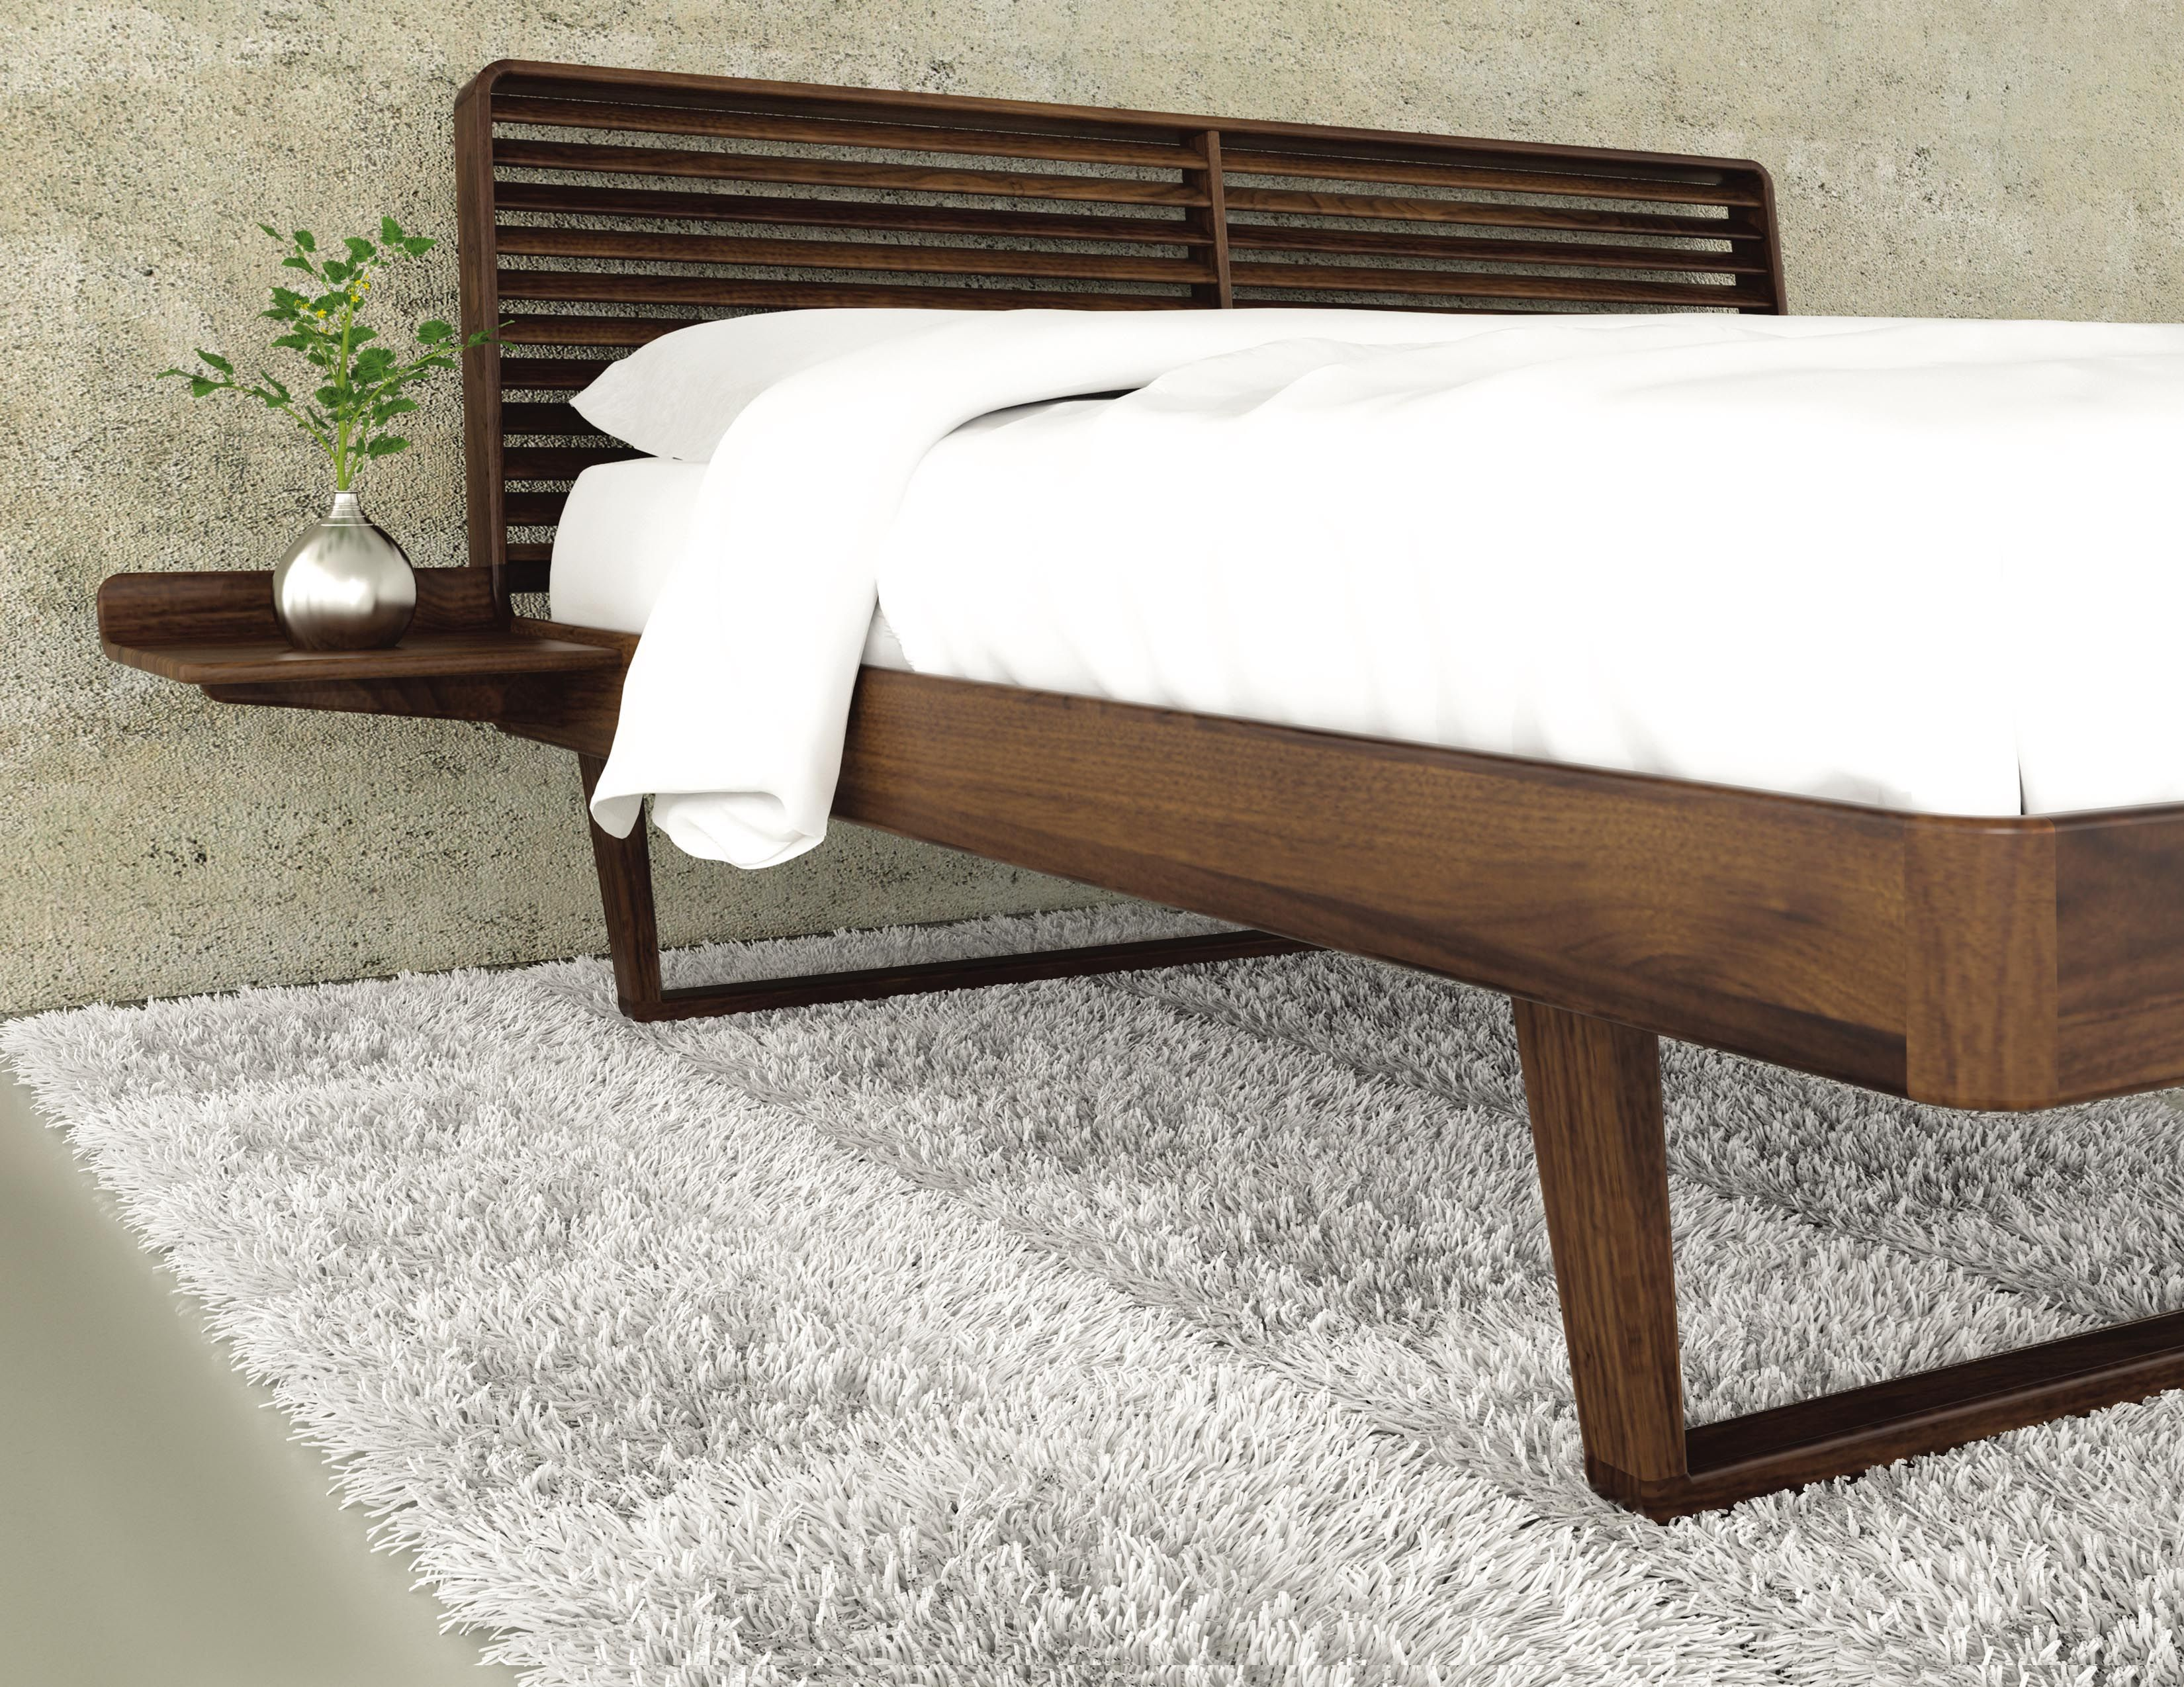 Major space saver a bed with built in nightstands! A